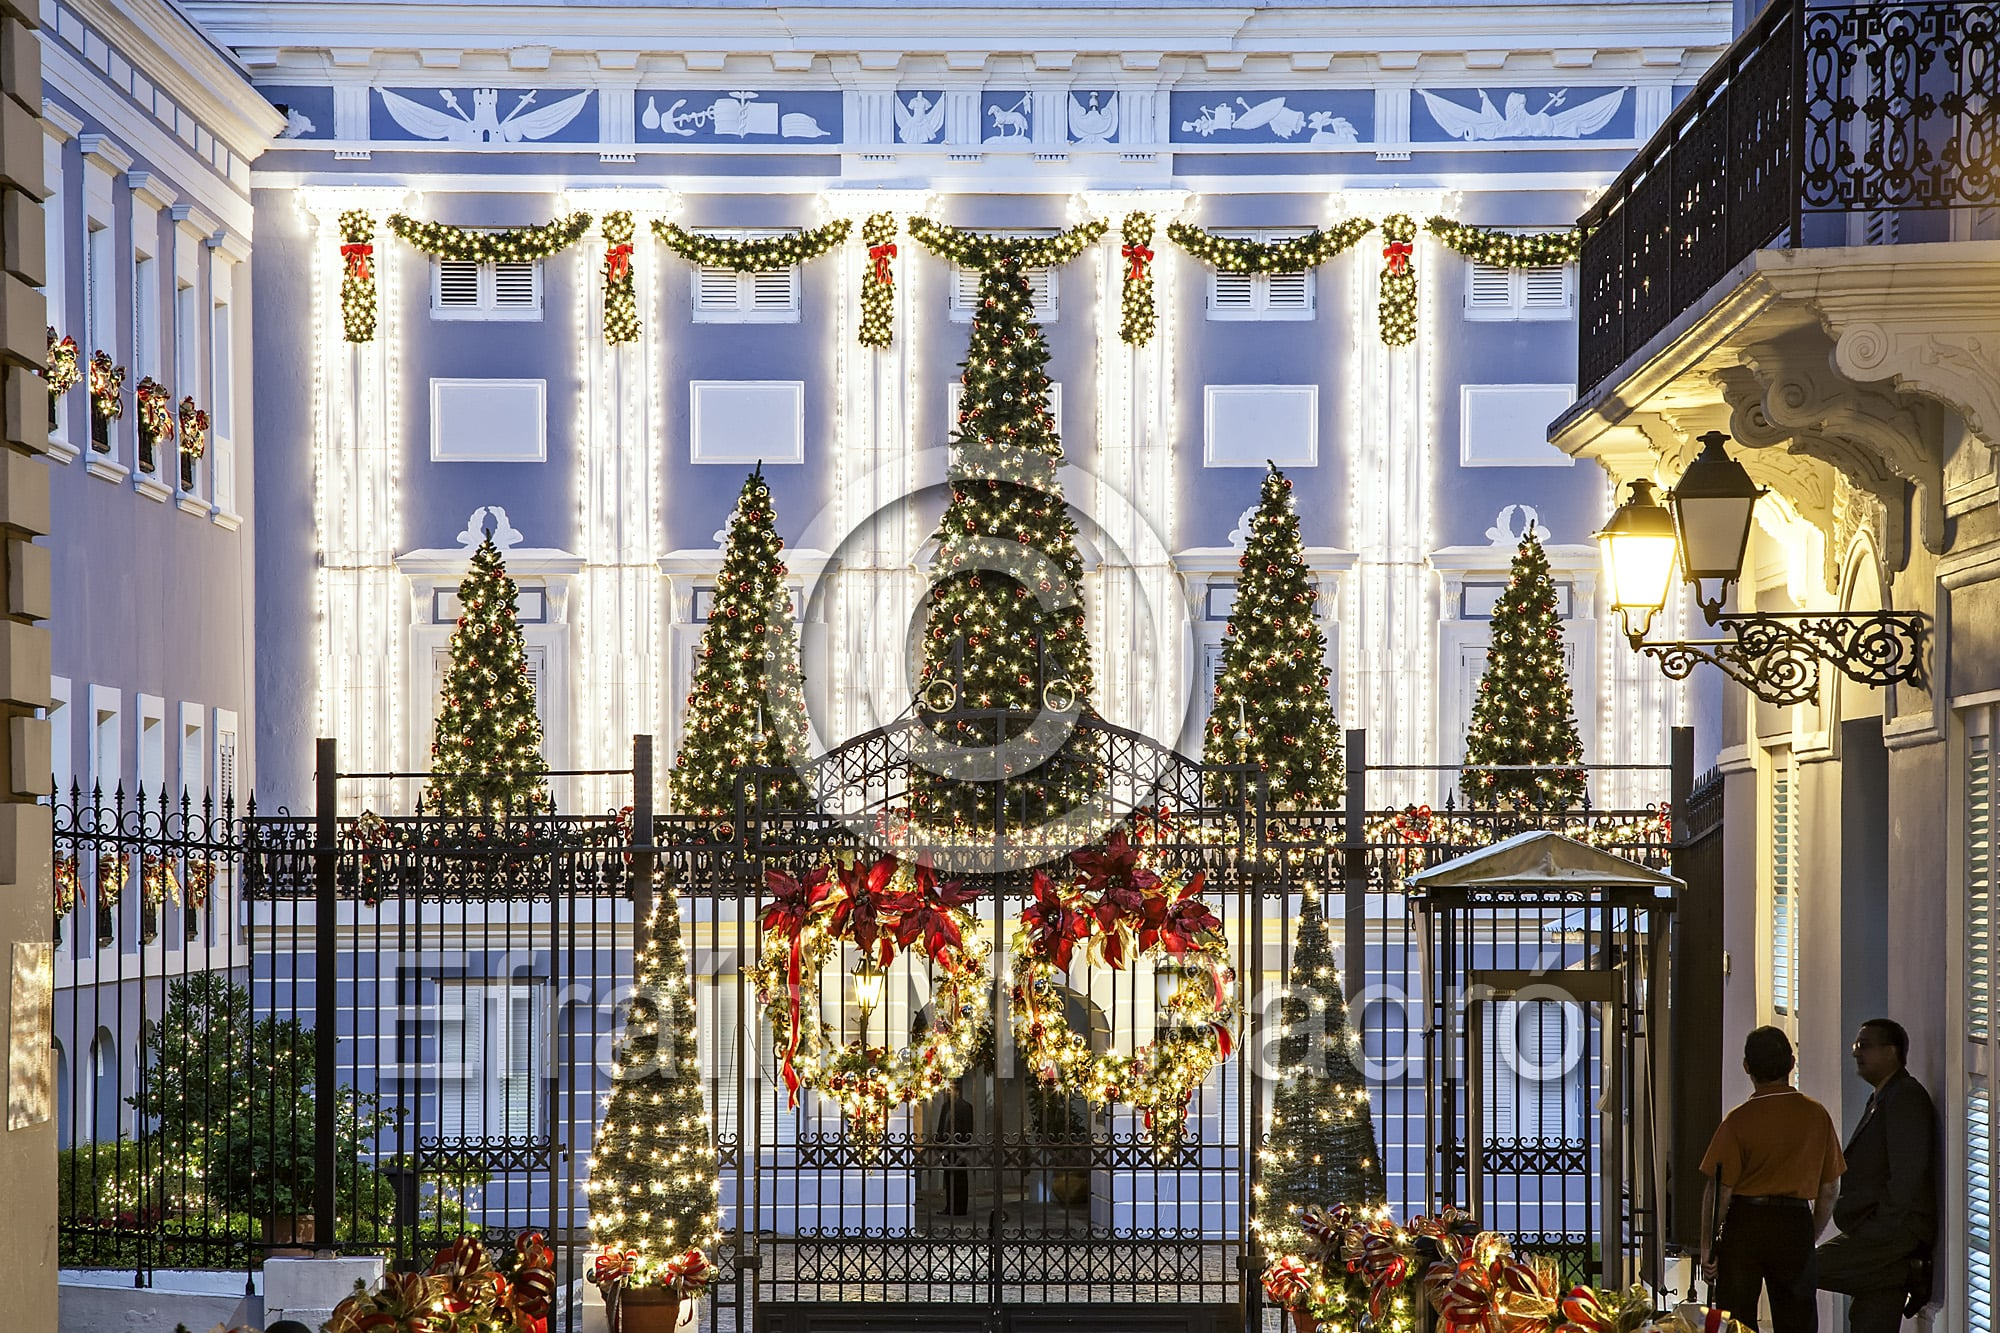 La Fortaleza (governor's mansion) decorated for Christmas, Old San Juan, Puerto Rico